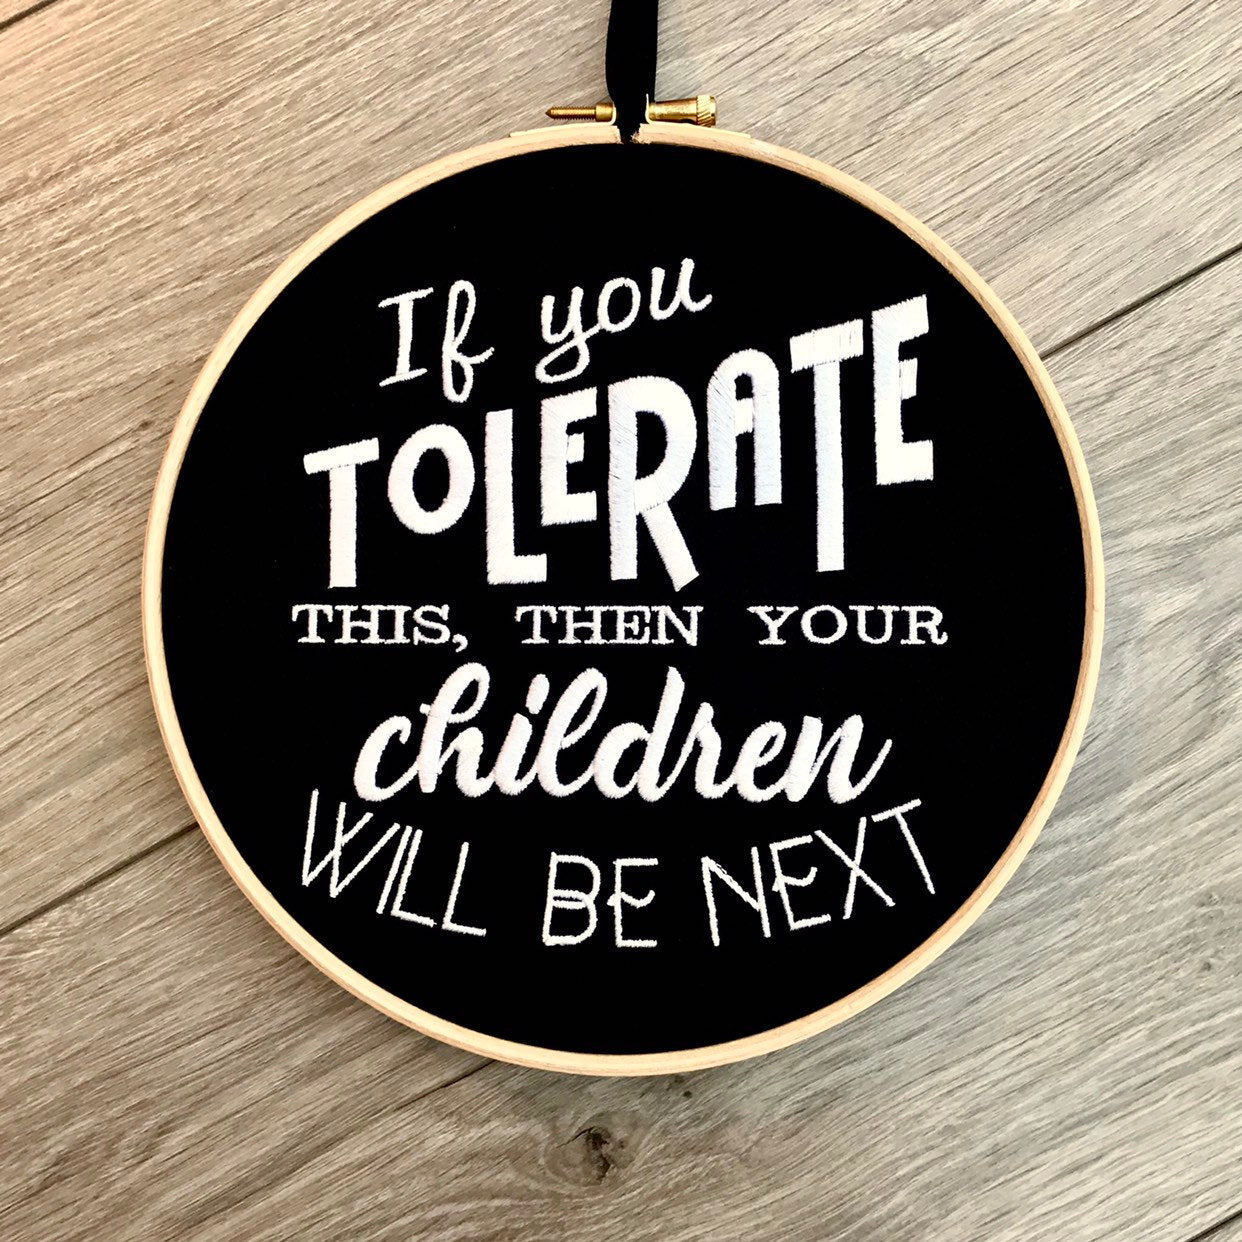 If you tolerate this then your children will be next embroidery hoop art